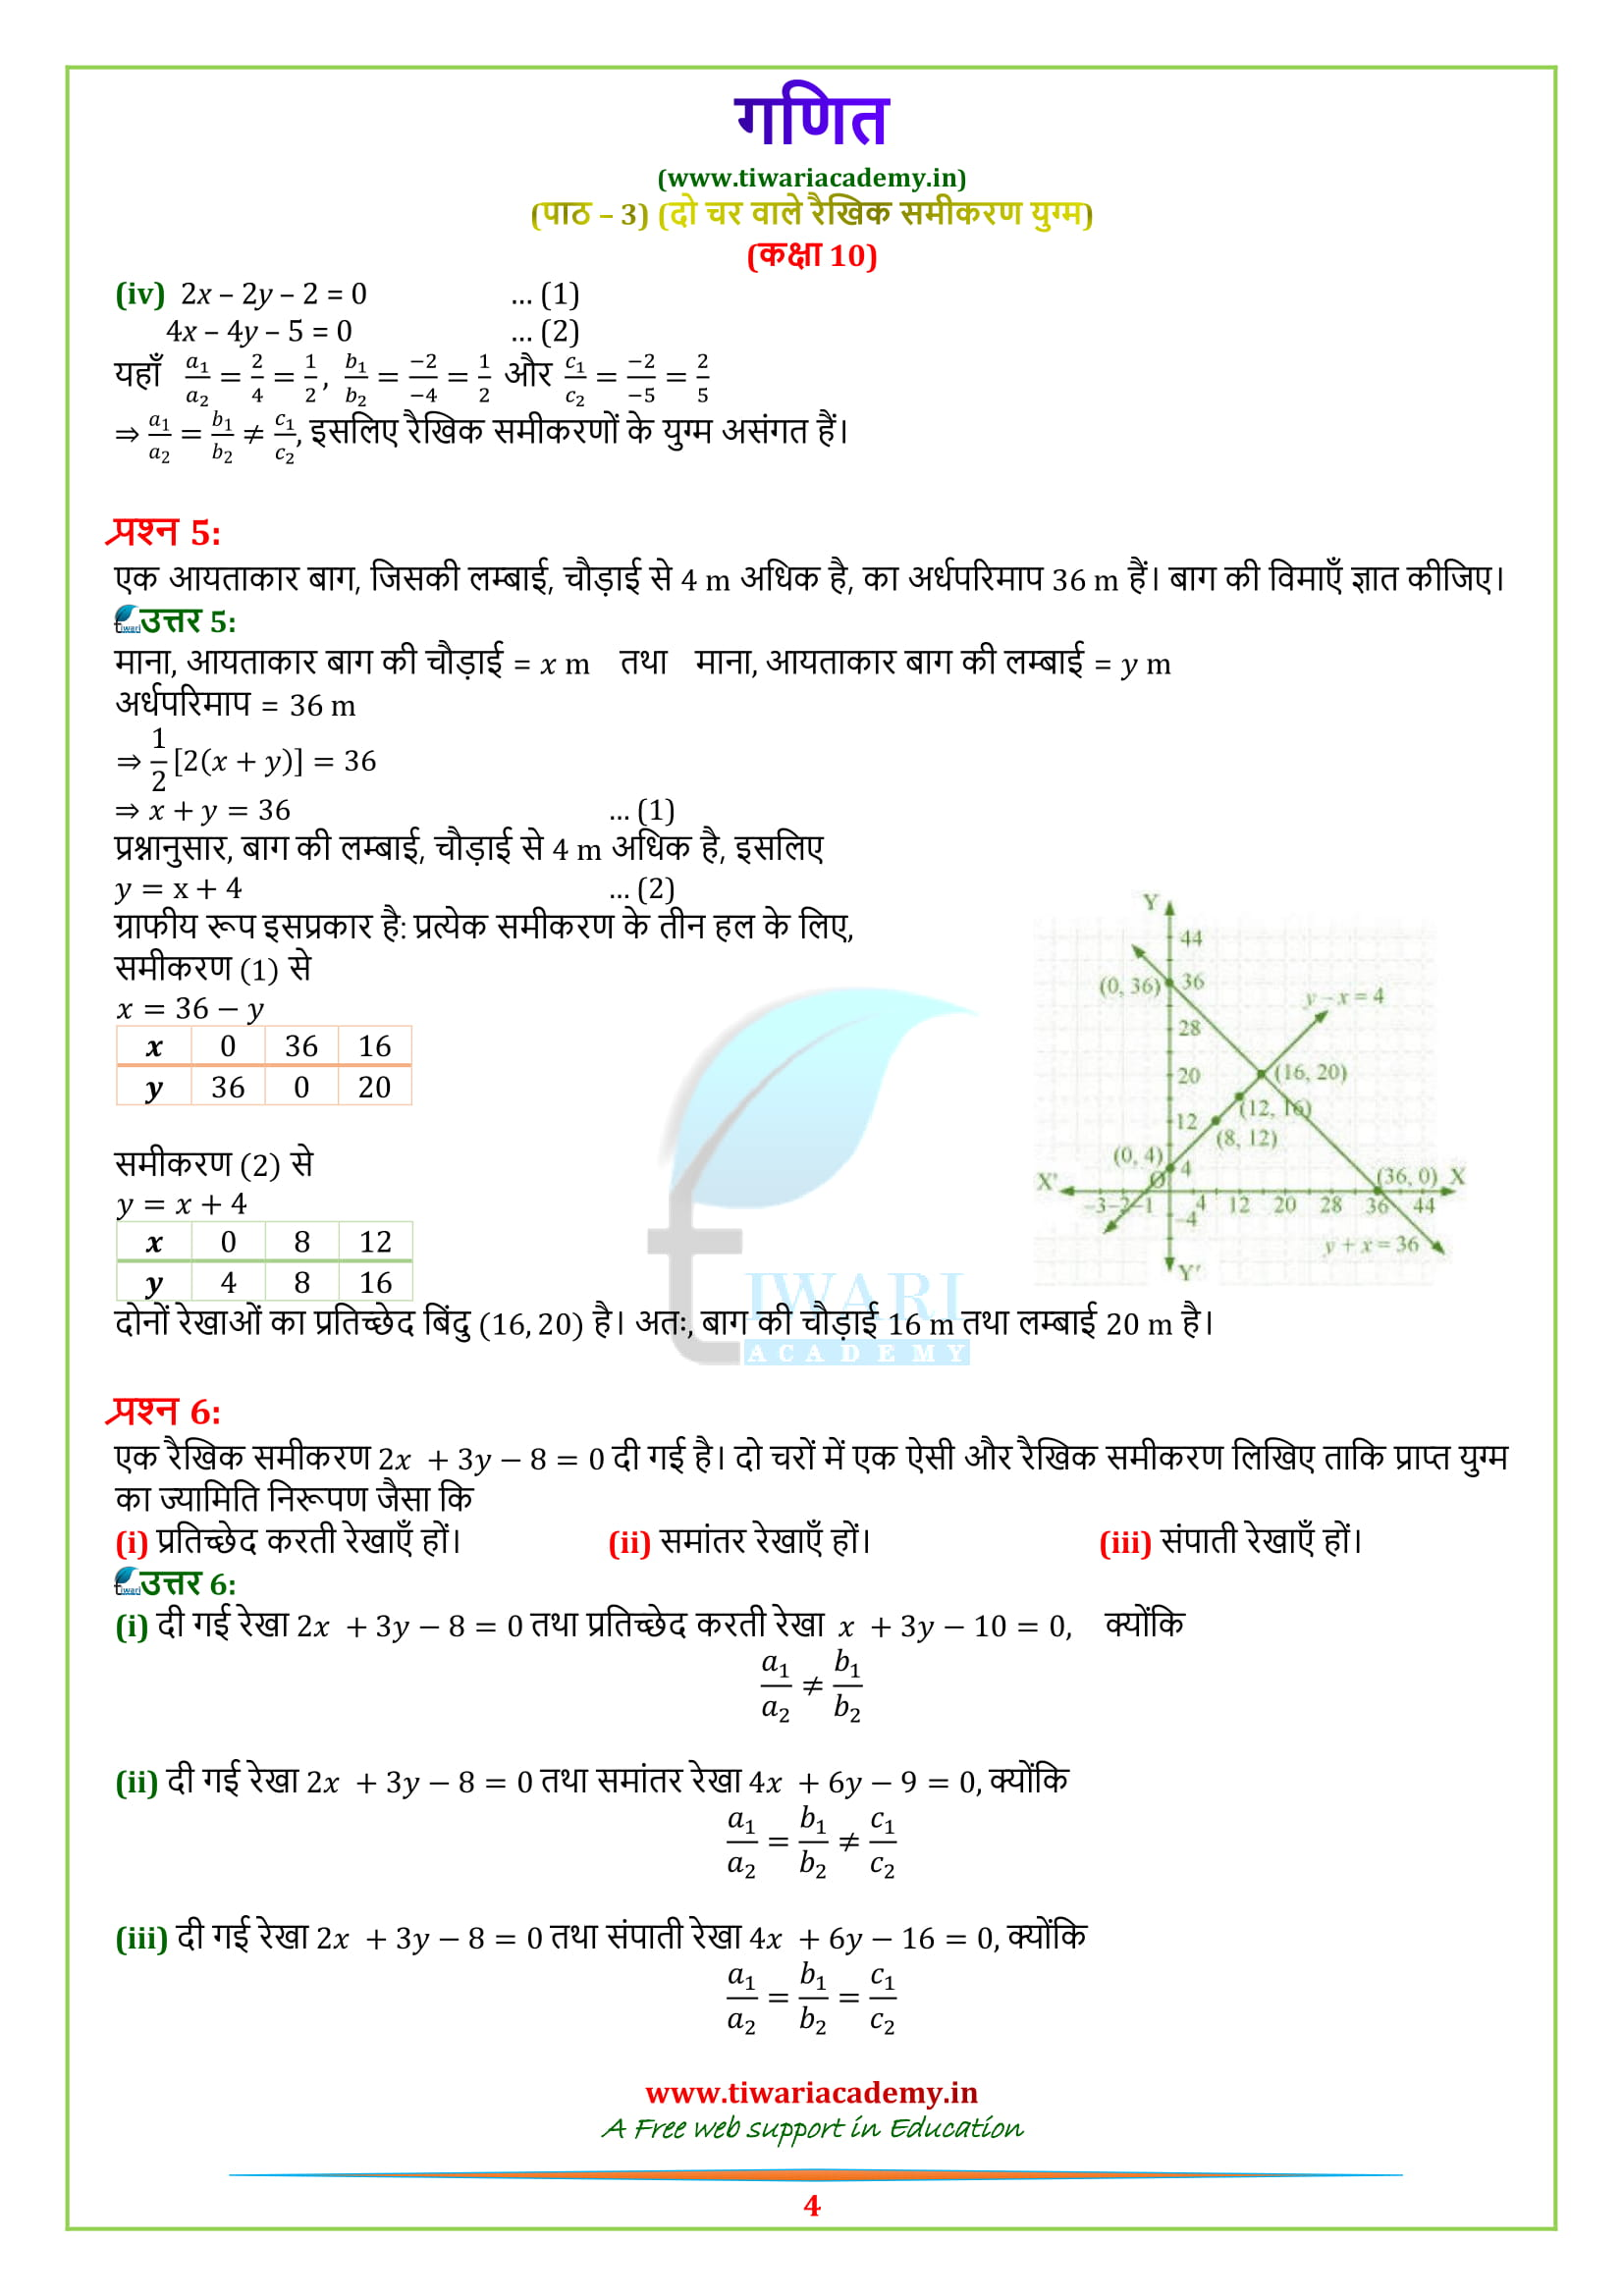 Class 10 Maths Exercise 3.2 sols in hindi